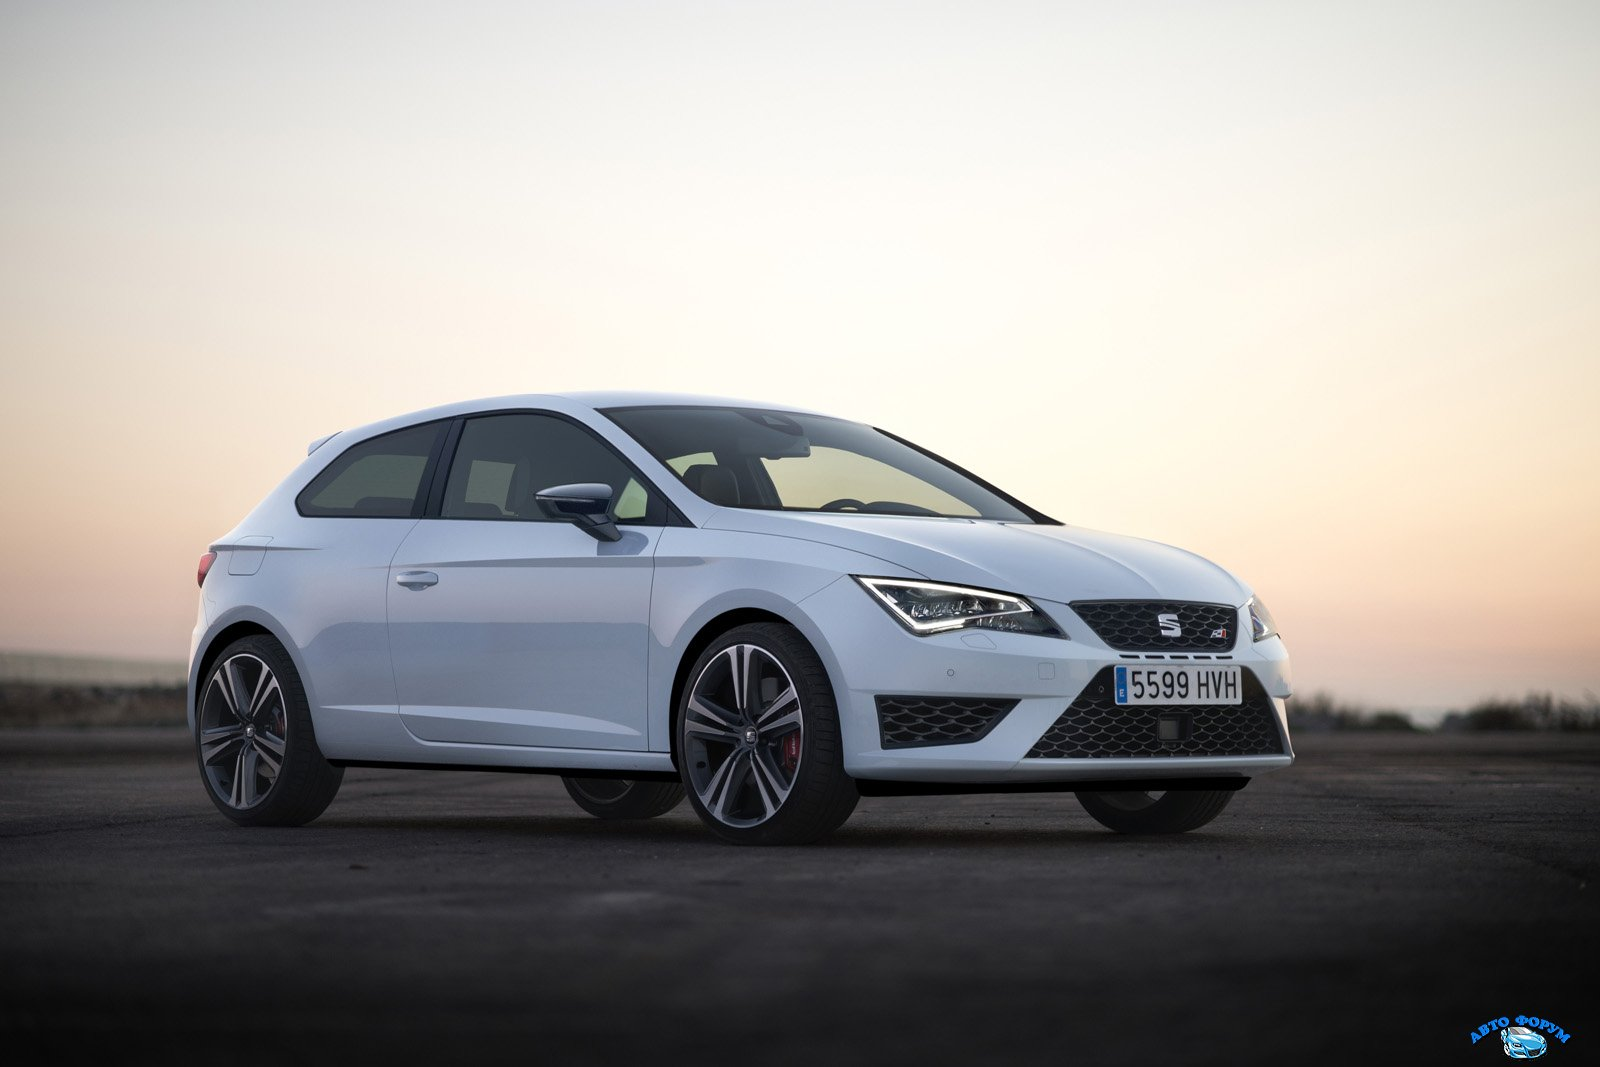 new-photos-and-videos-show-280-hp-seat-leon-cupra-in-detail_5.jpg